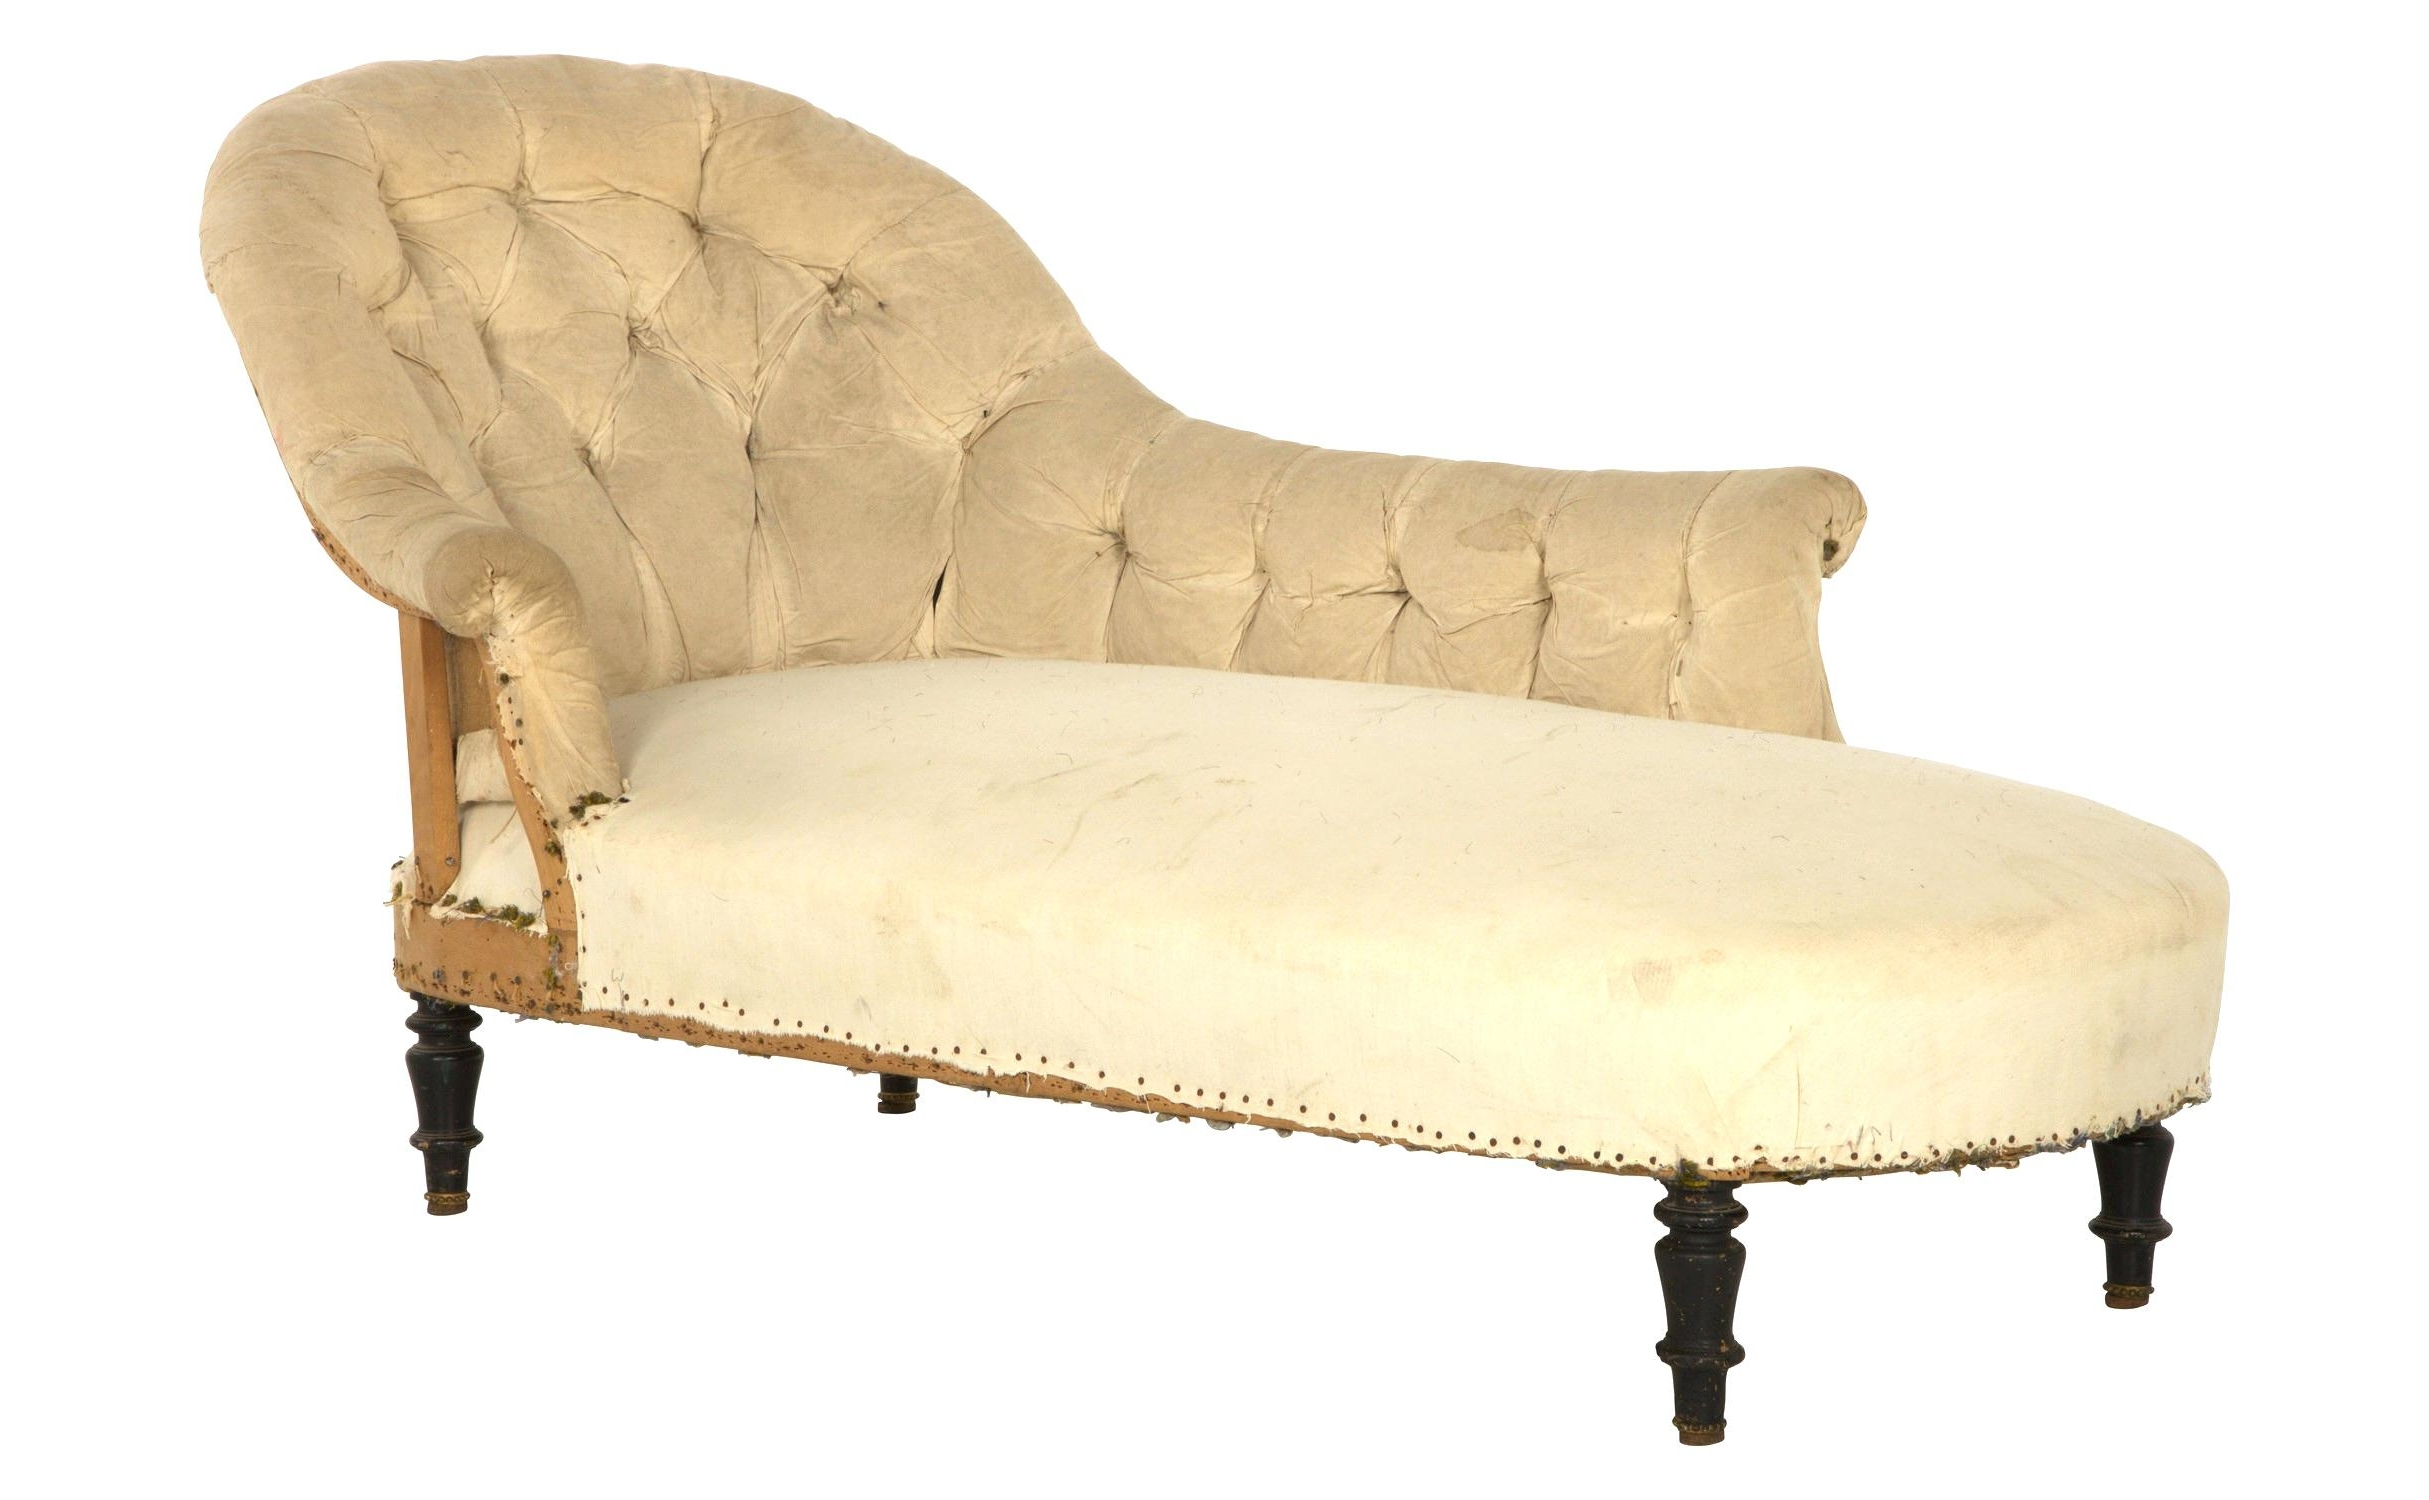 Most Popular Antique Chaise Lounge Chairs In Vintage Chaise Lounge Chairs • Lounge Chairs Ideas (View 6 of 15)